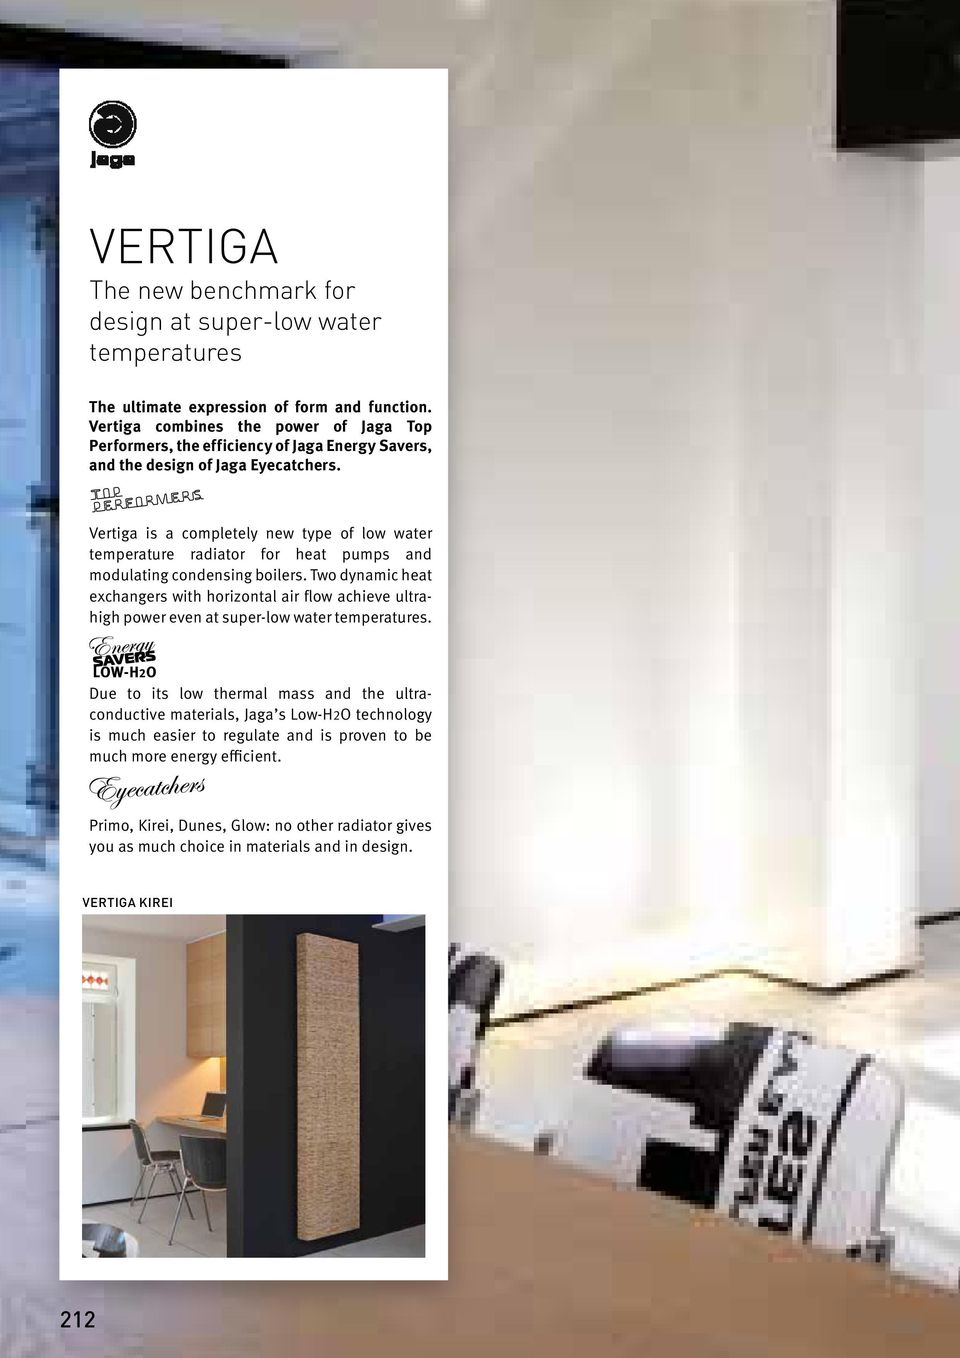 Vertiga is a completely new type of low water temperature radiator for heat pumps and modulating condensing boilers.